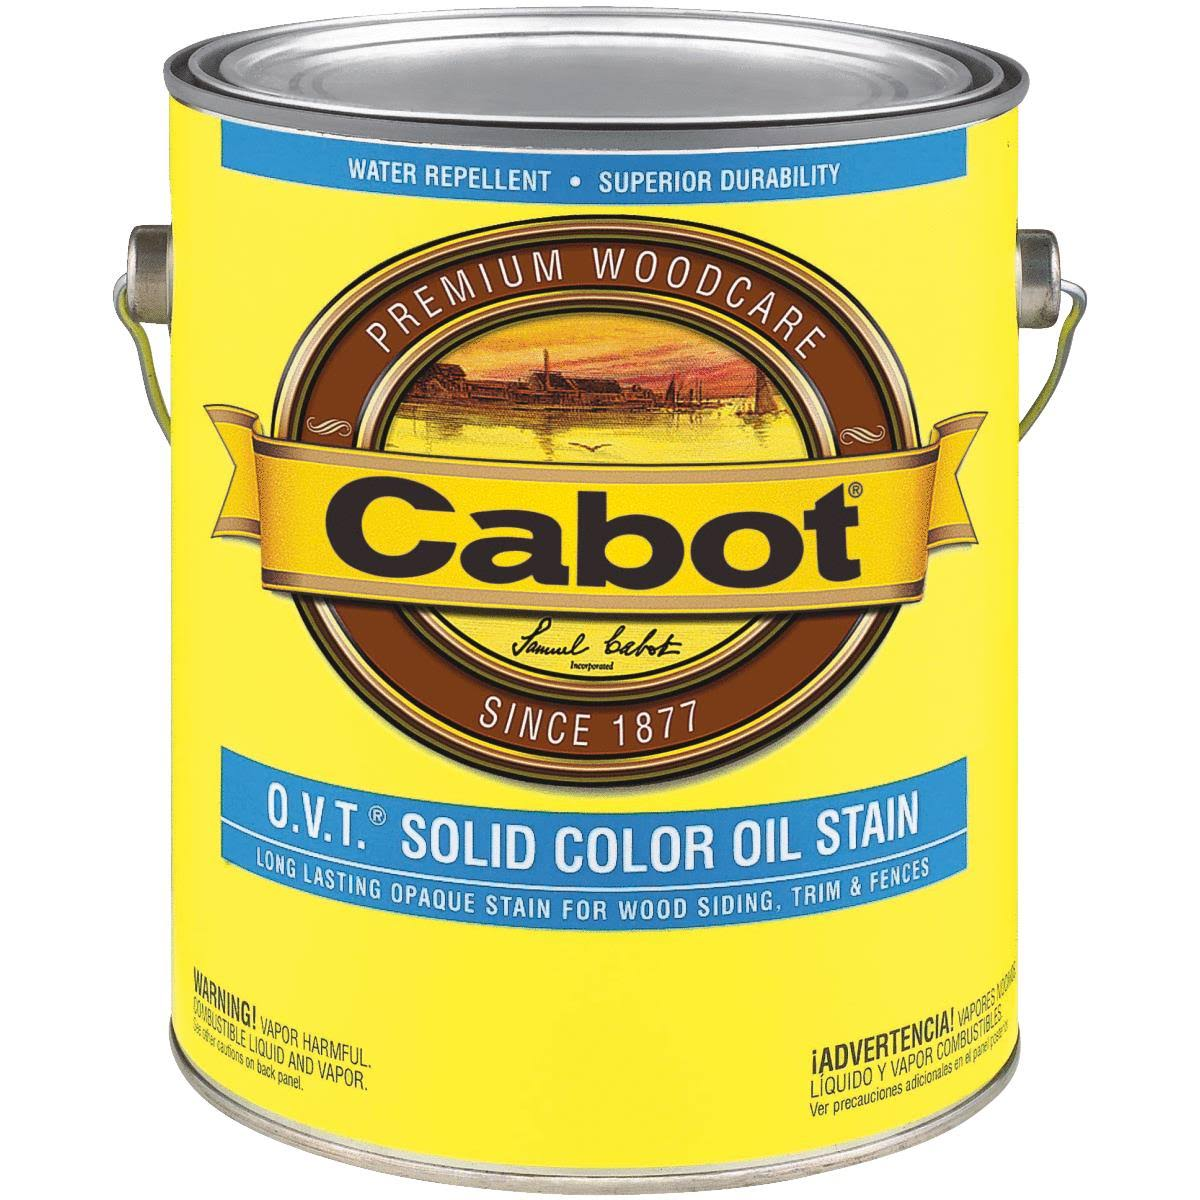 Cabot O.V.T. Solid Color Oil Stain